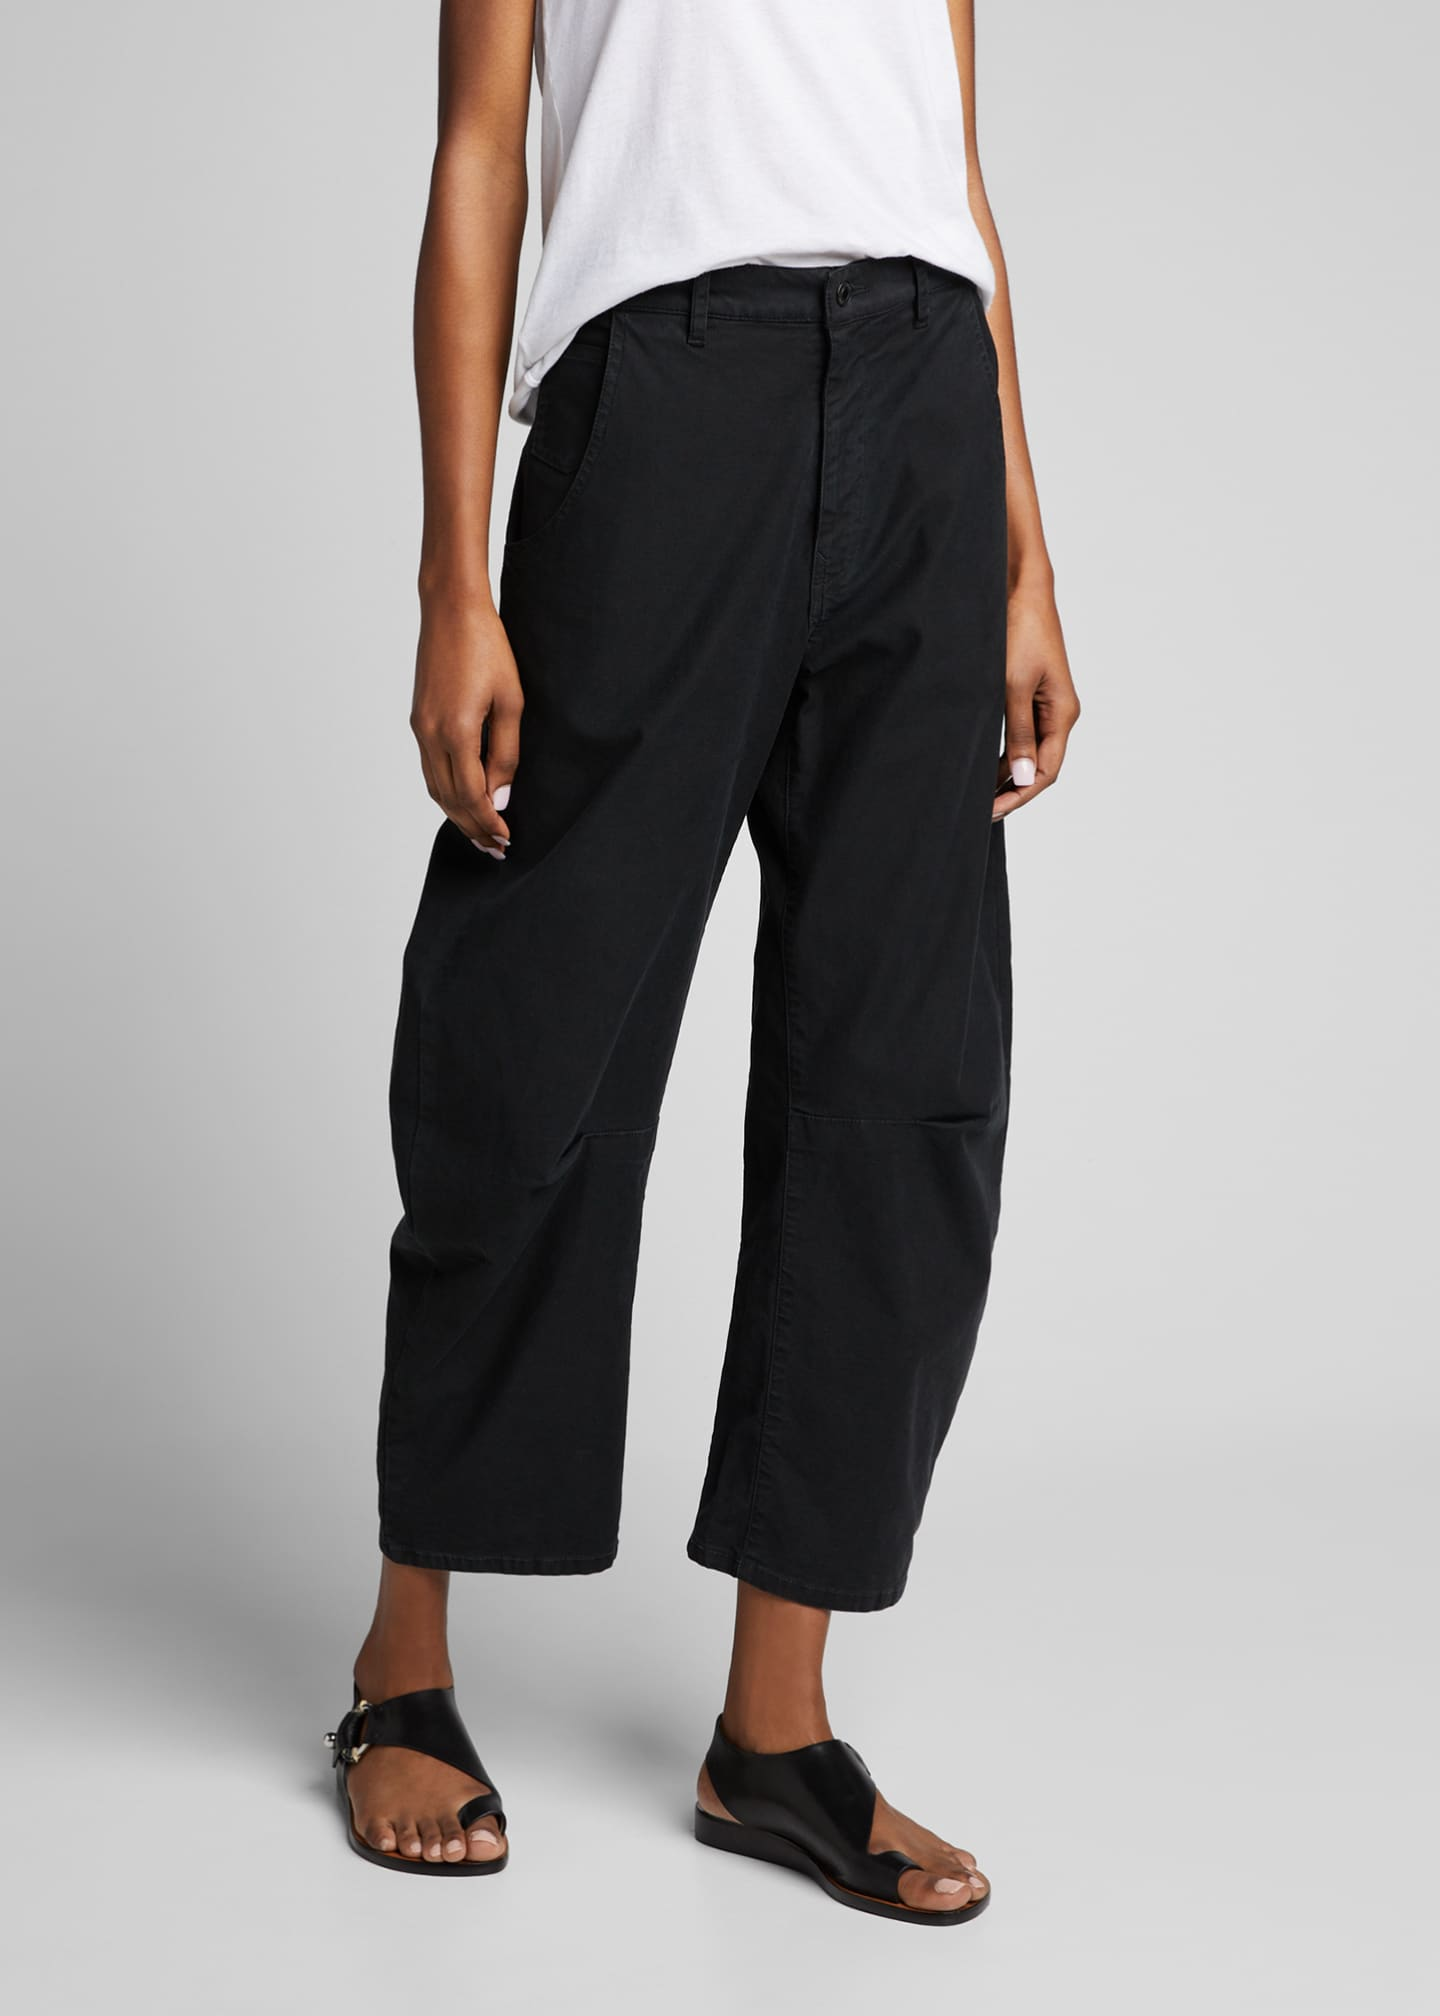 Image 3 of 5: Emerson Cropped Pants